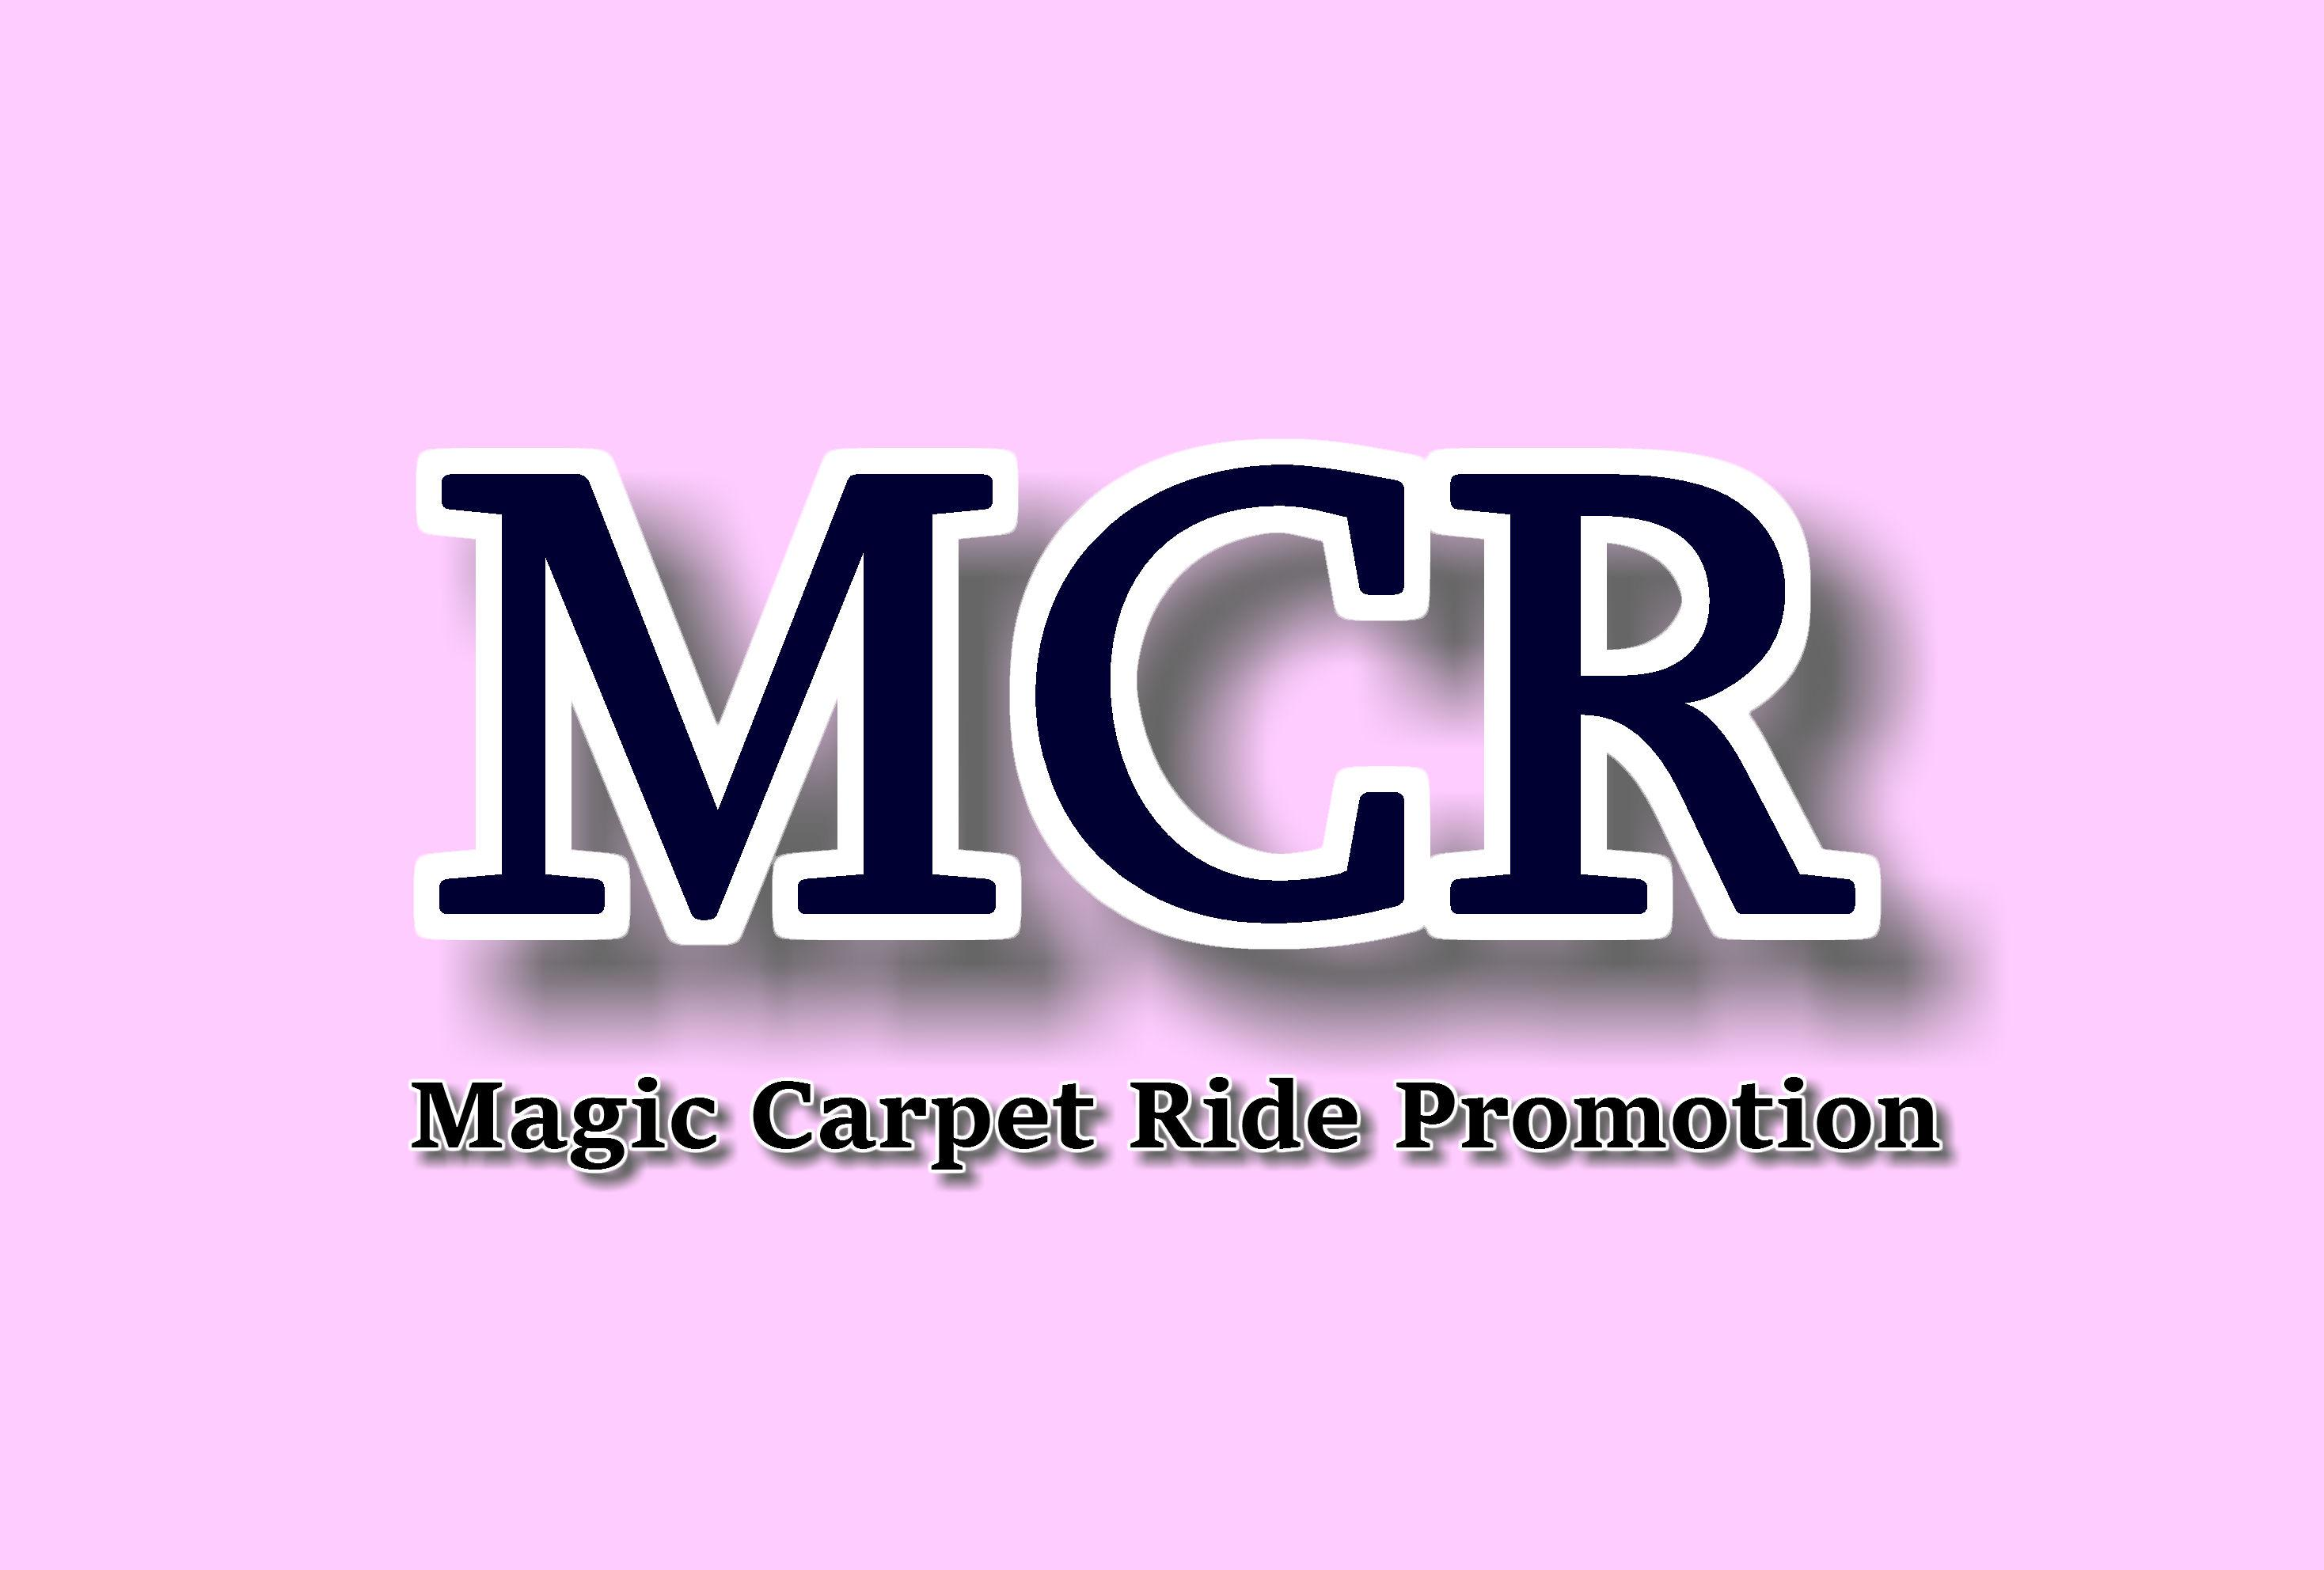 Magic Carpet Ride Promotion